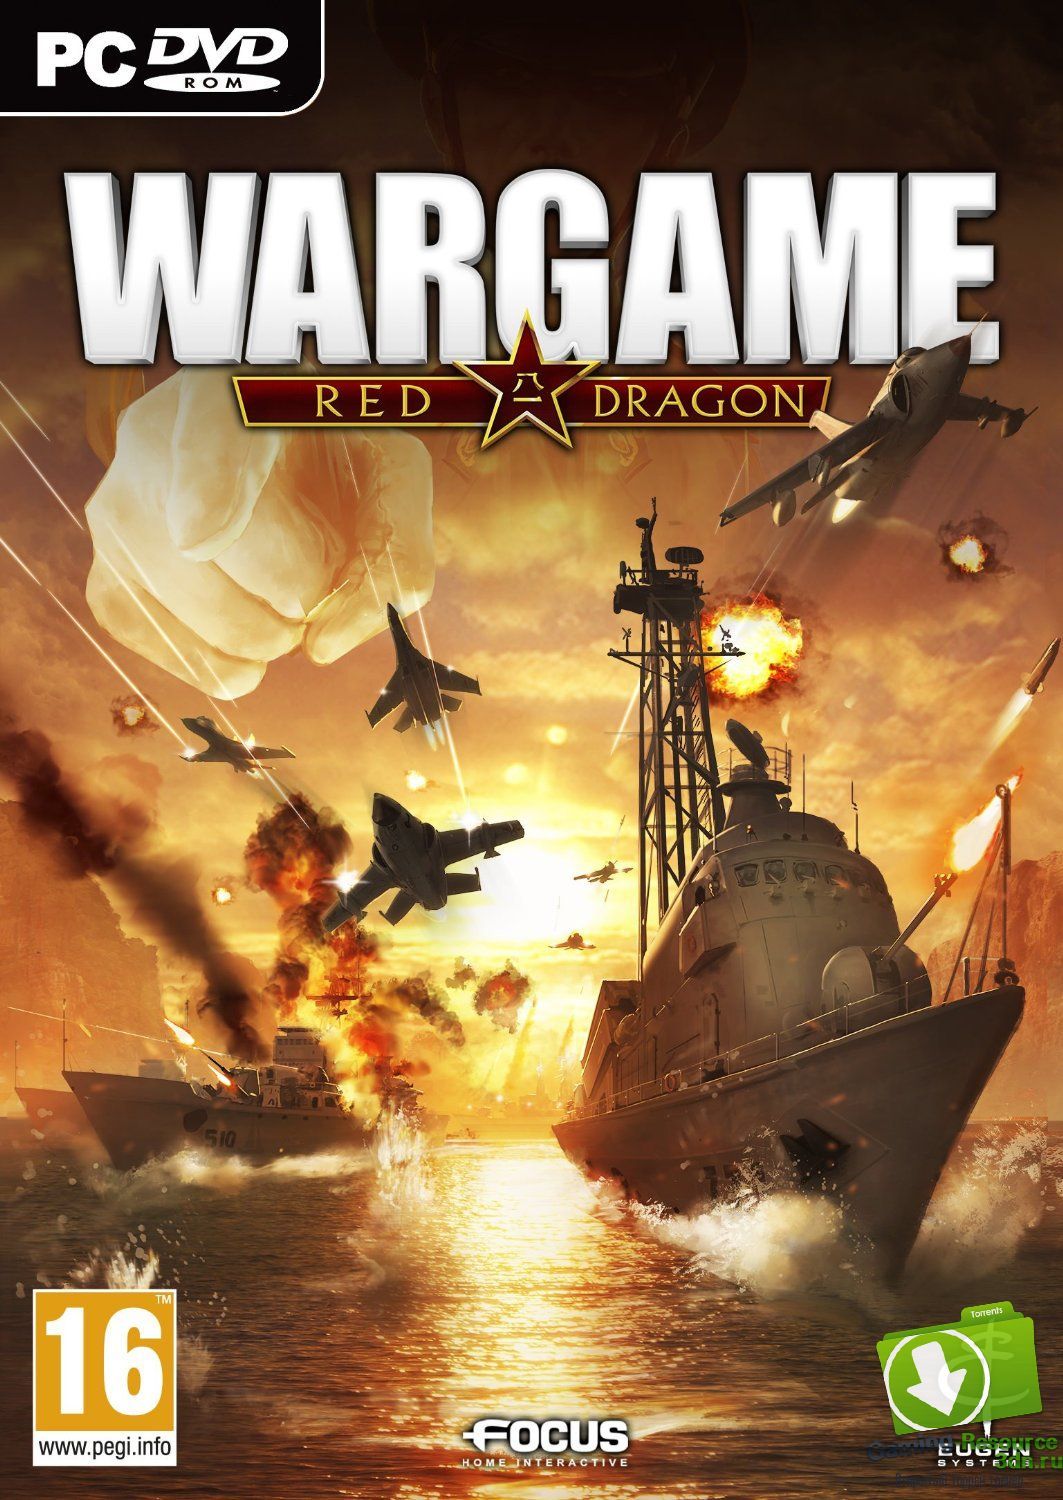 Wargame: Red Dragon [v 16.05.20.510025133 + 4 DLC] (2014) PC | RePack от FitGirl